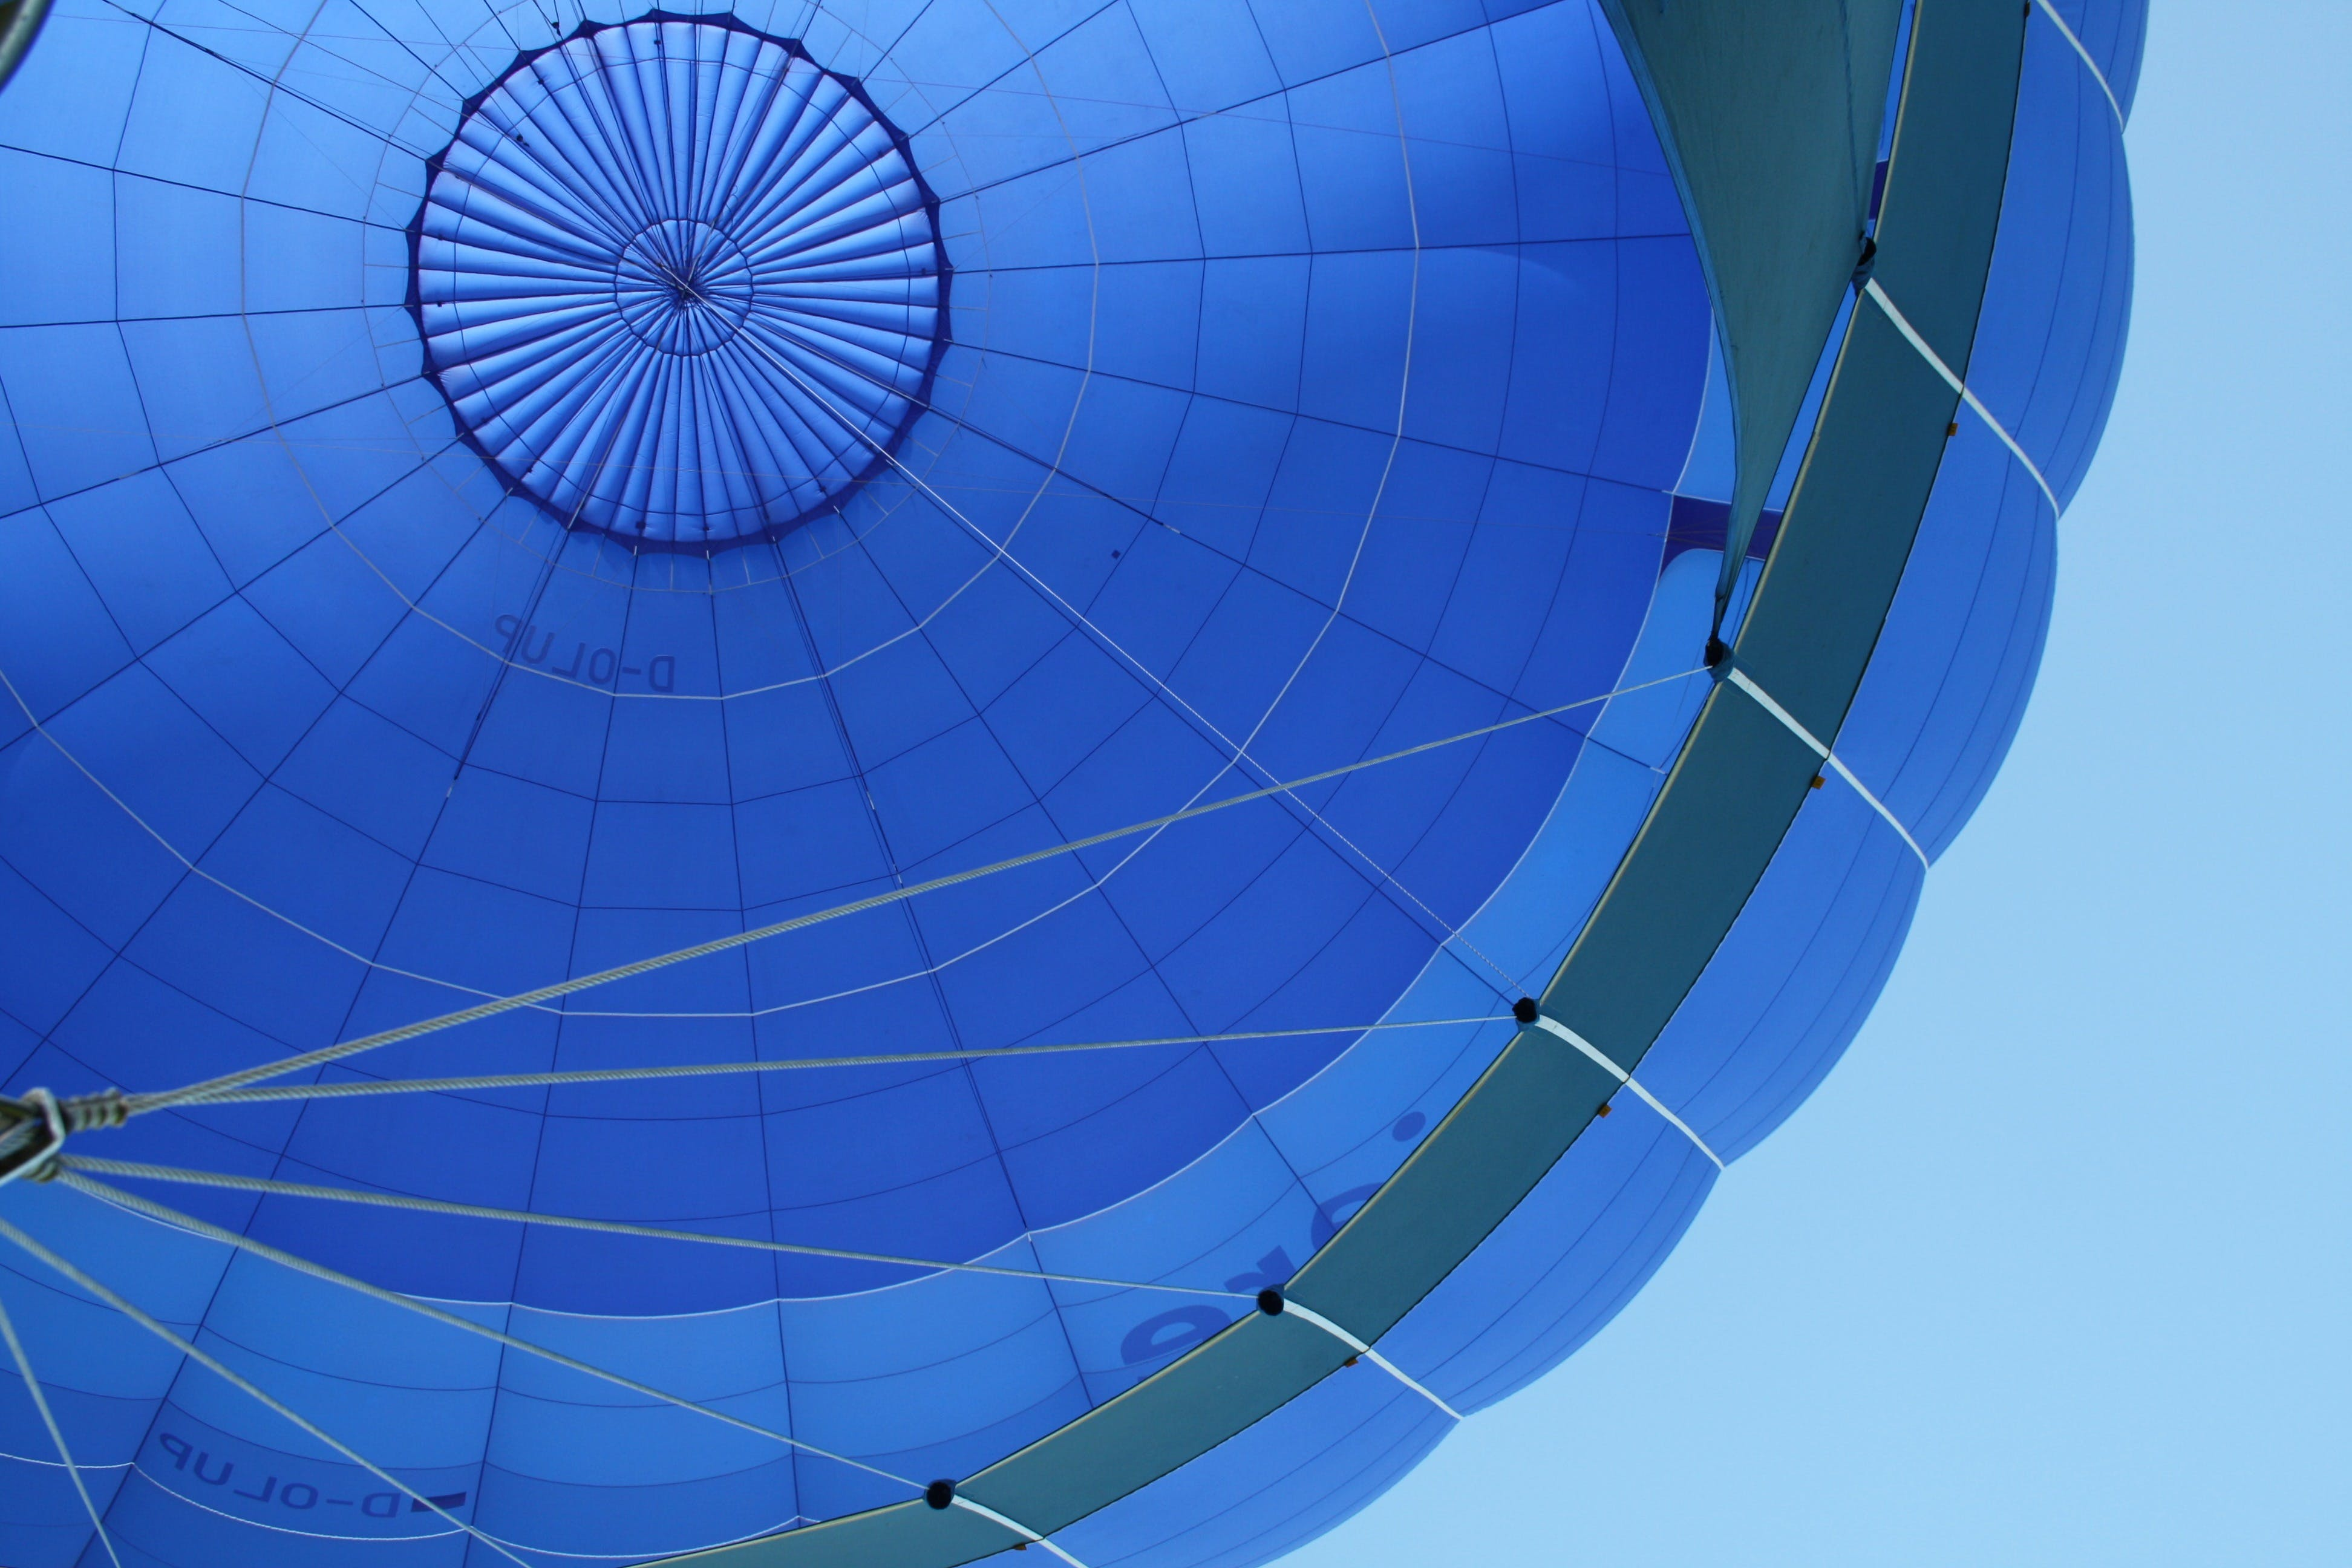 Blue and Gray Hot Air Balloon